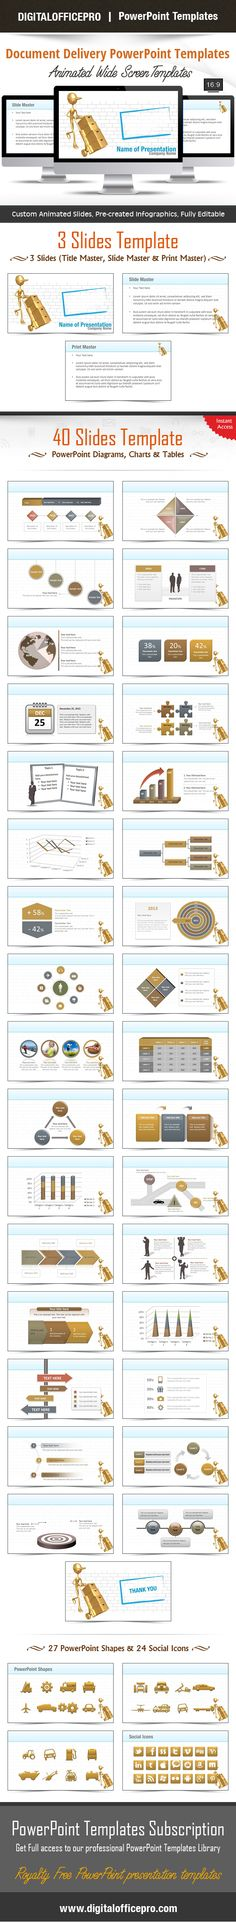 Impress and Engage your audience with Document Delivery PowerPoint Template and Document Delivery PowerPoint Backgrounds from DigitalOfficePro. Each template comes with a set of PowerPoint Diagrams, Charts & Shapes and are available for instant download.